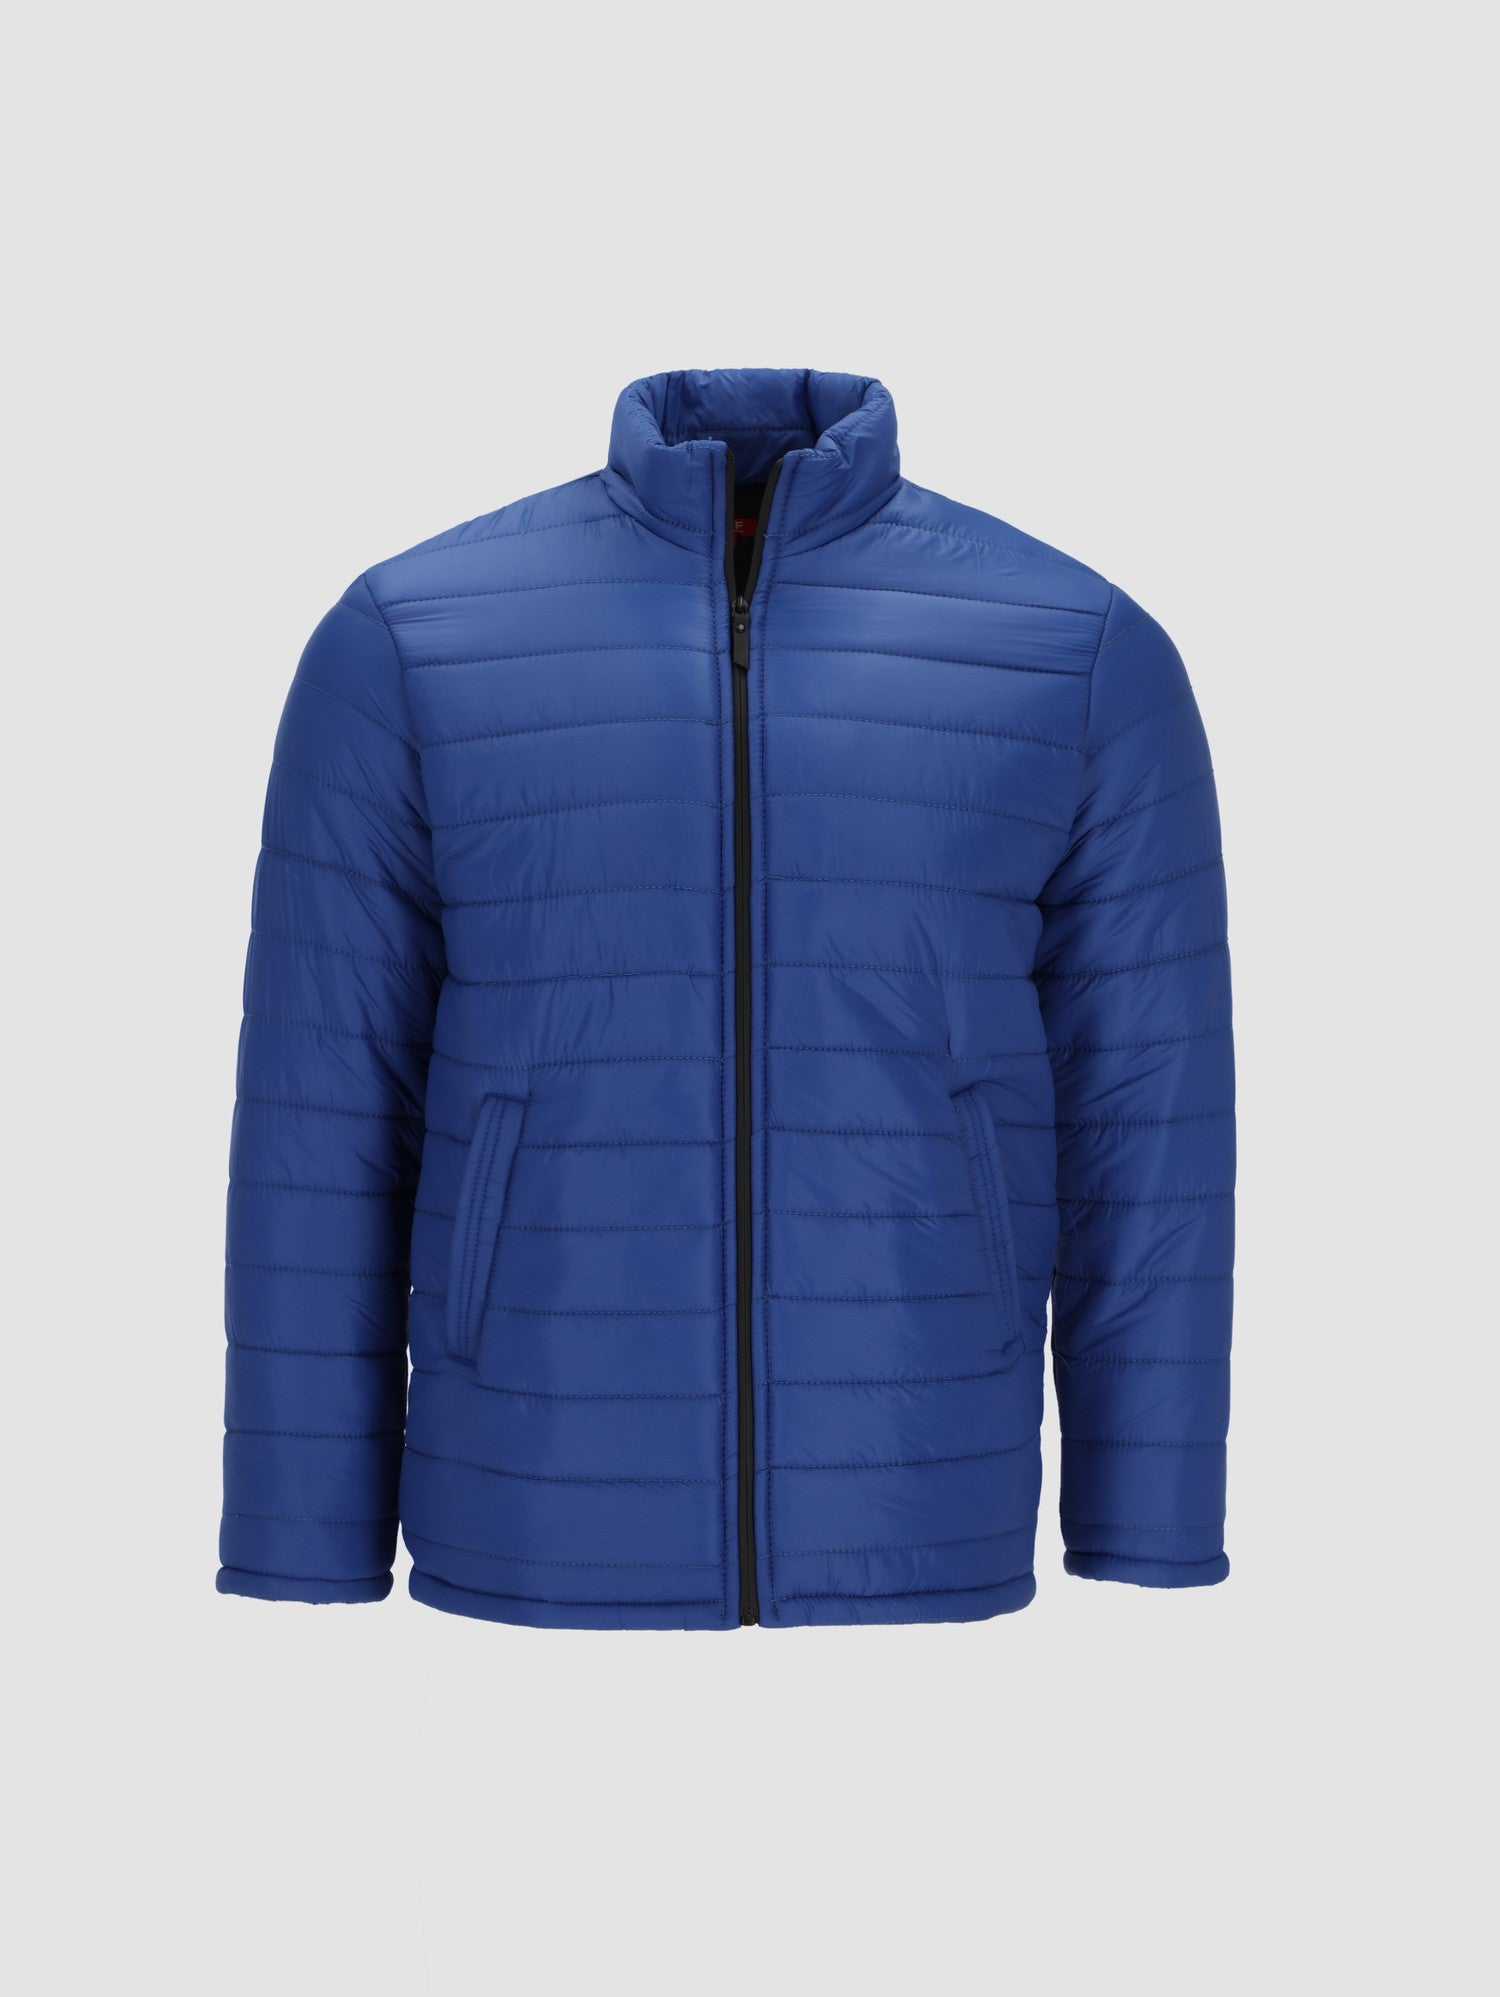 Men's Puffer Design Nylon Jacket